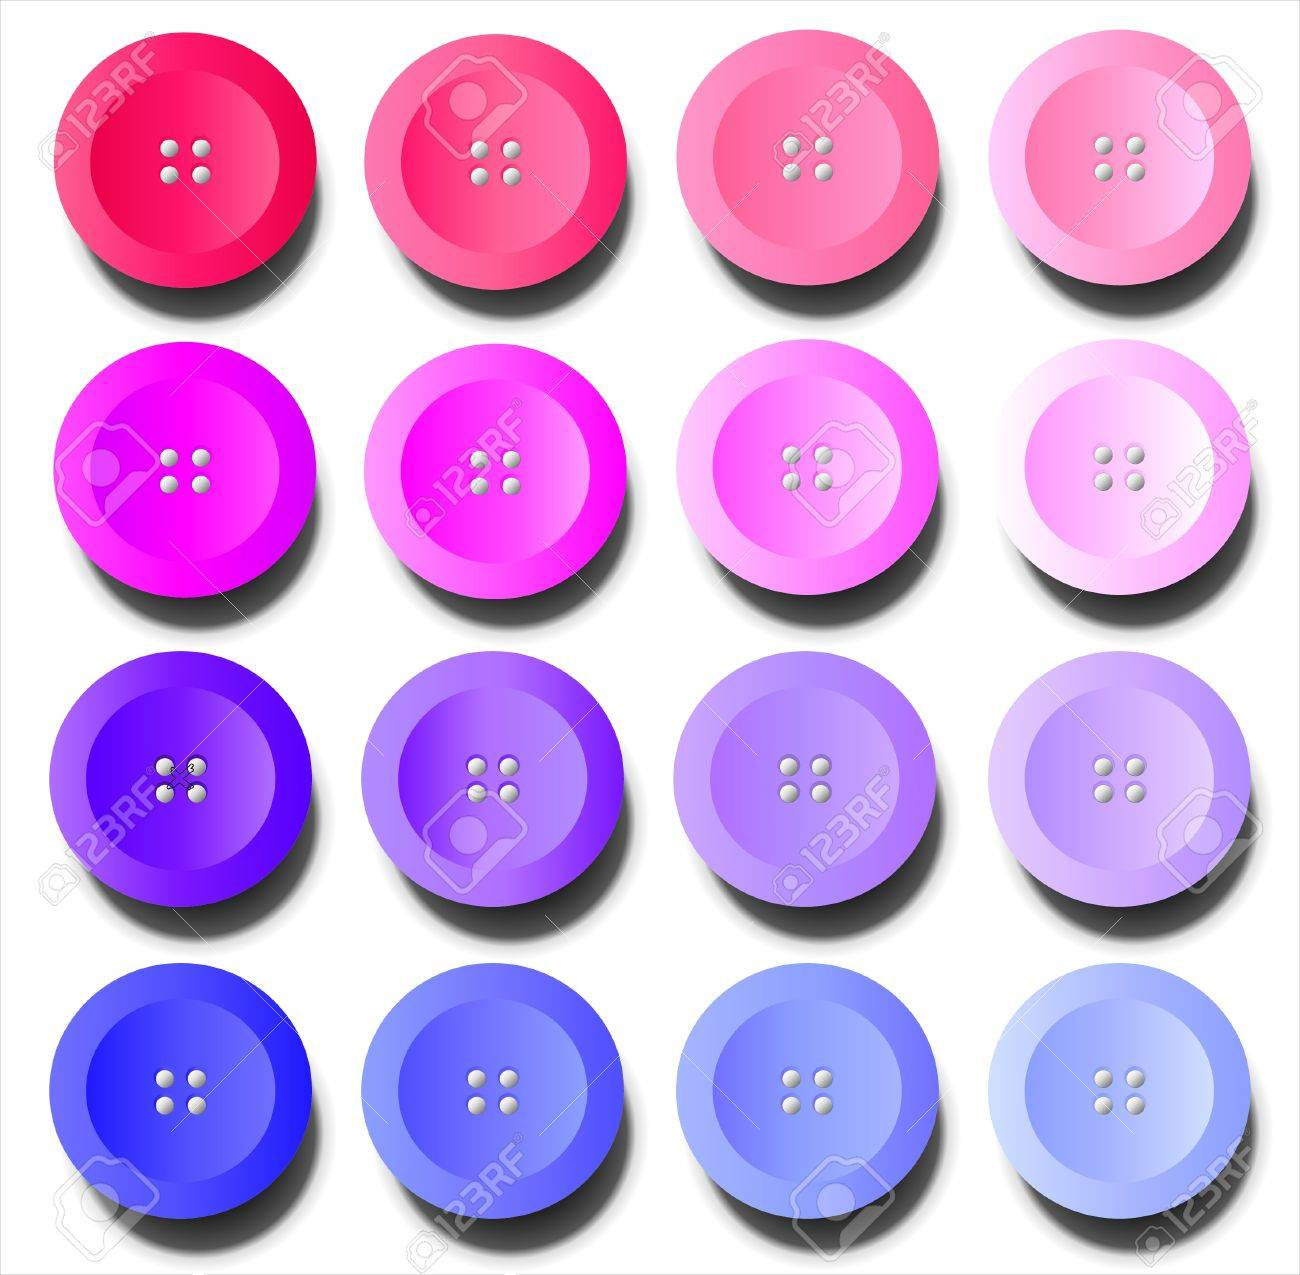 Purple Shades A Vector Illustration Of Buttons In Shades Of Pink And Purple